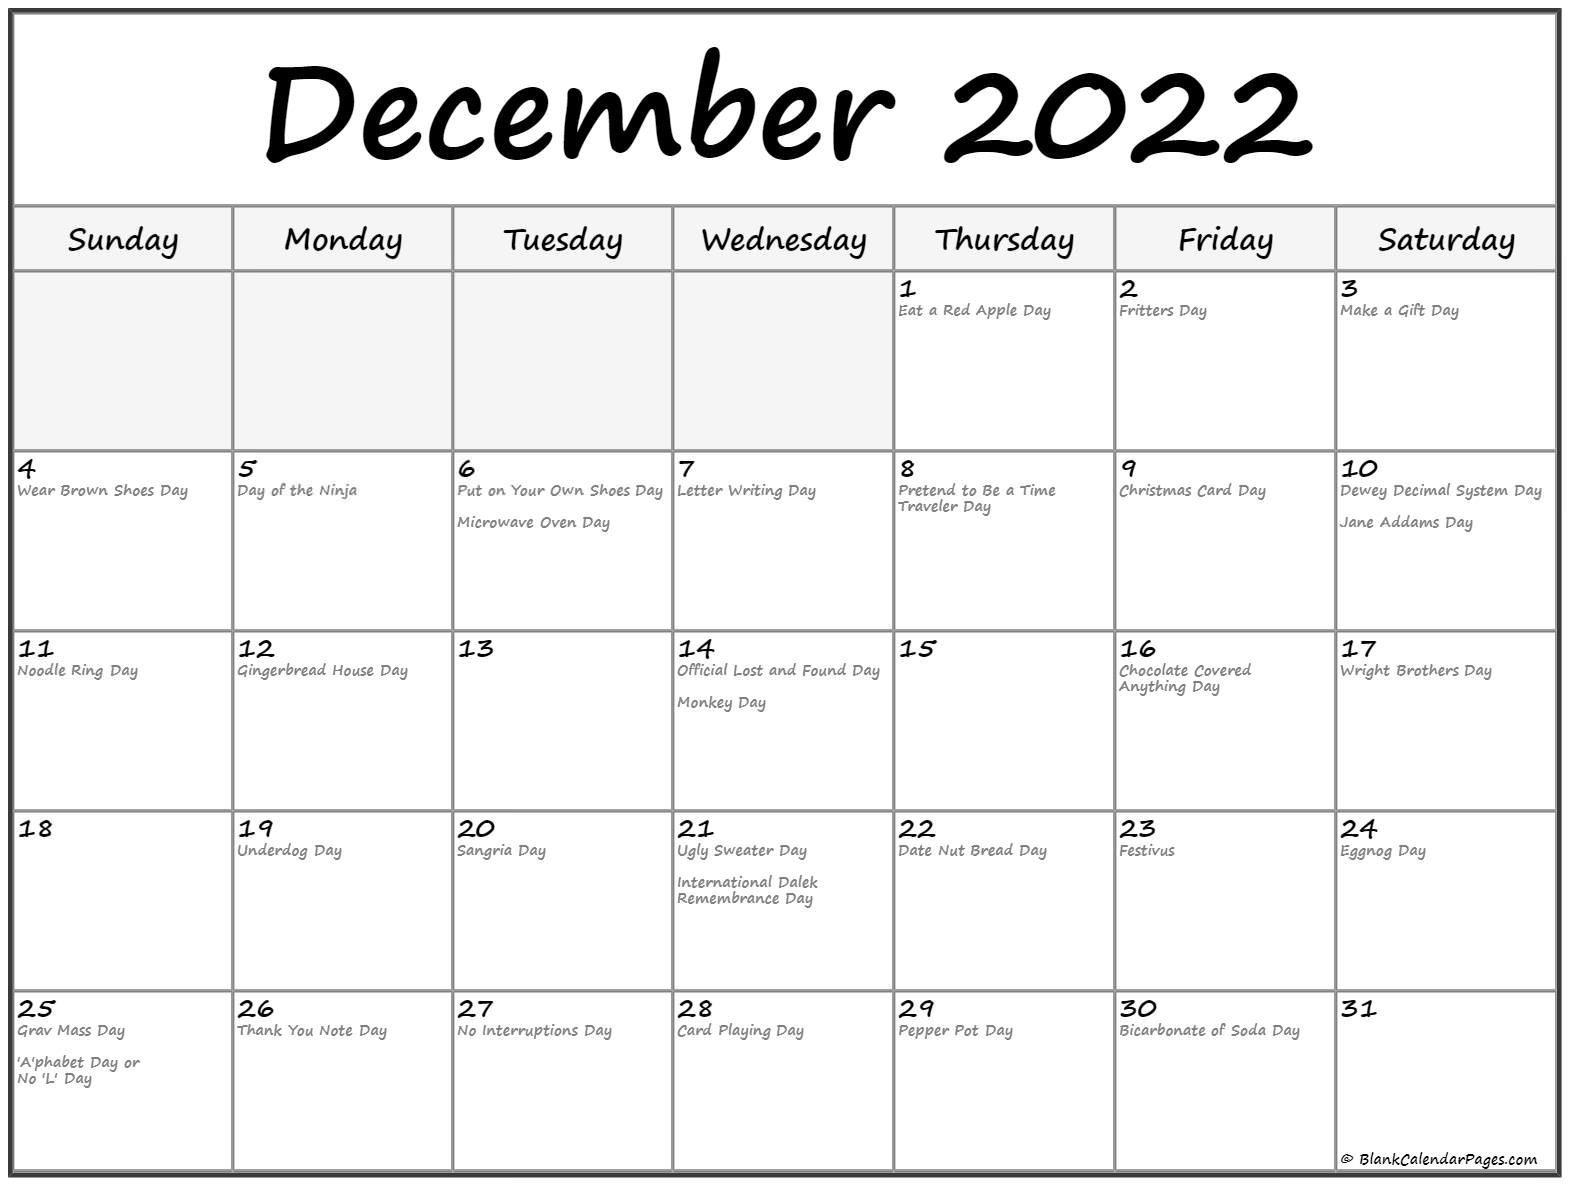 December 2022 calendar with holidays